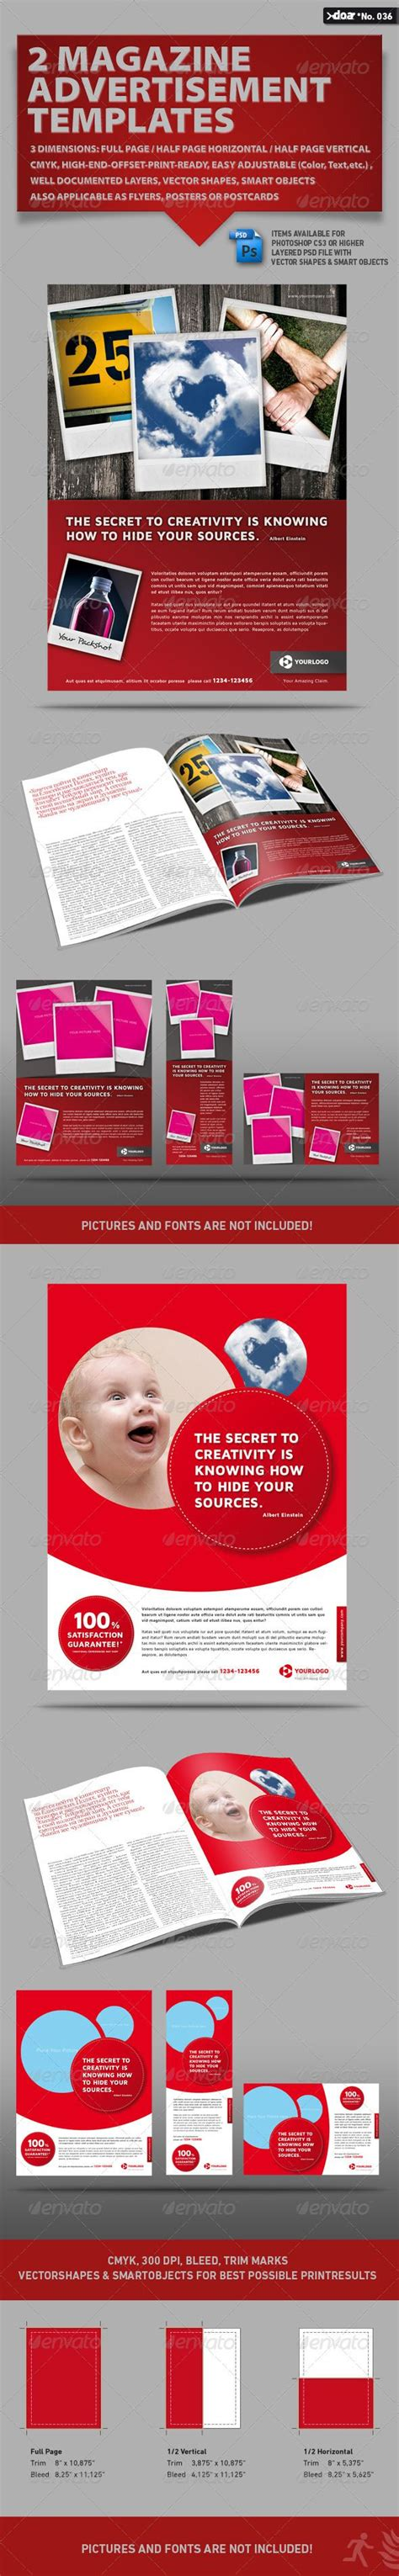 template photoshop cs3 1000 images about print templates on pinterest fonts